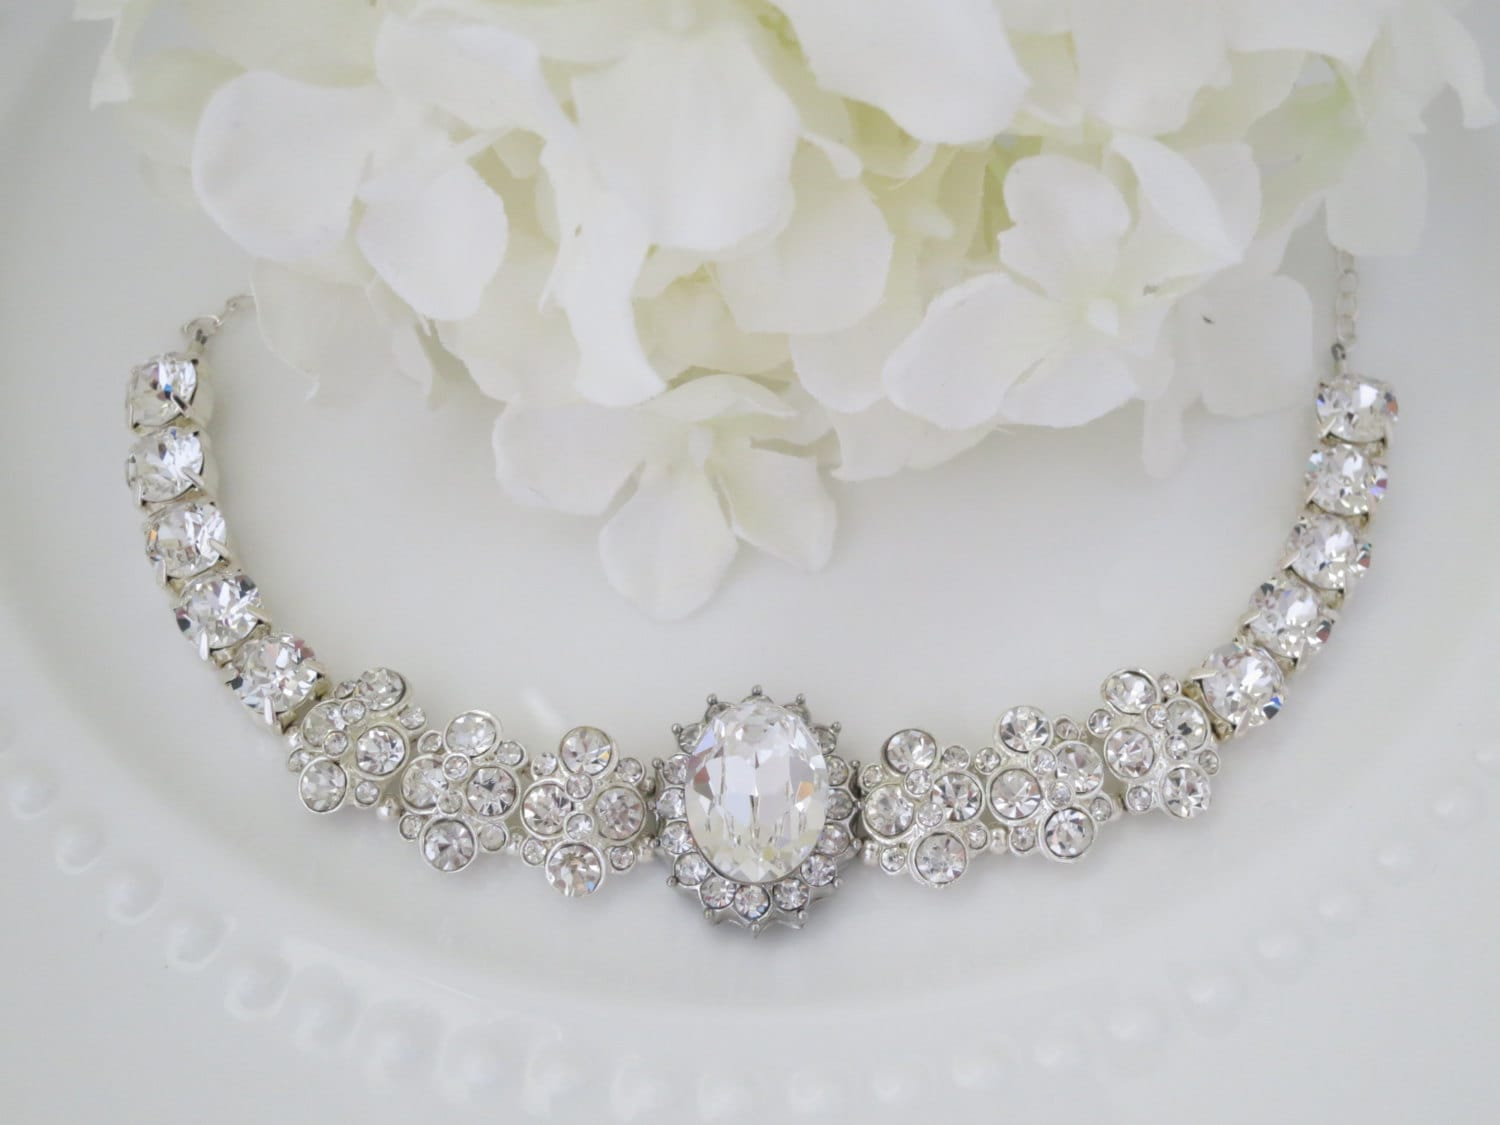 Statement bridal necklace, Glamorous rhinestone necklace, Crystal wedding necklace